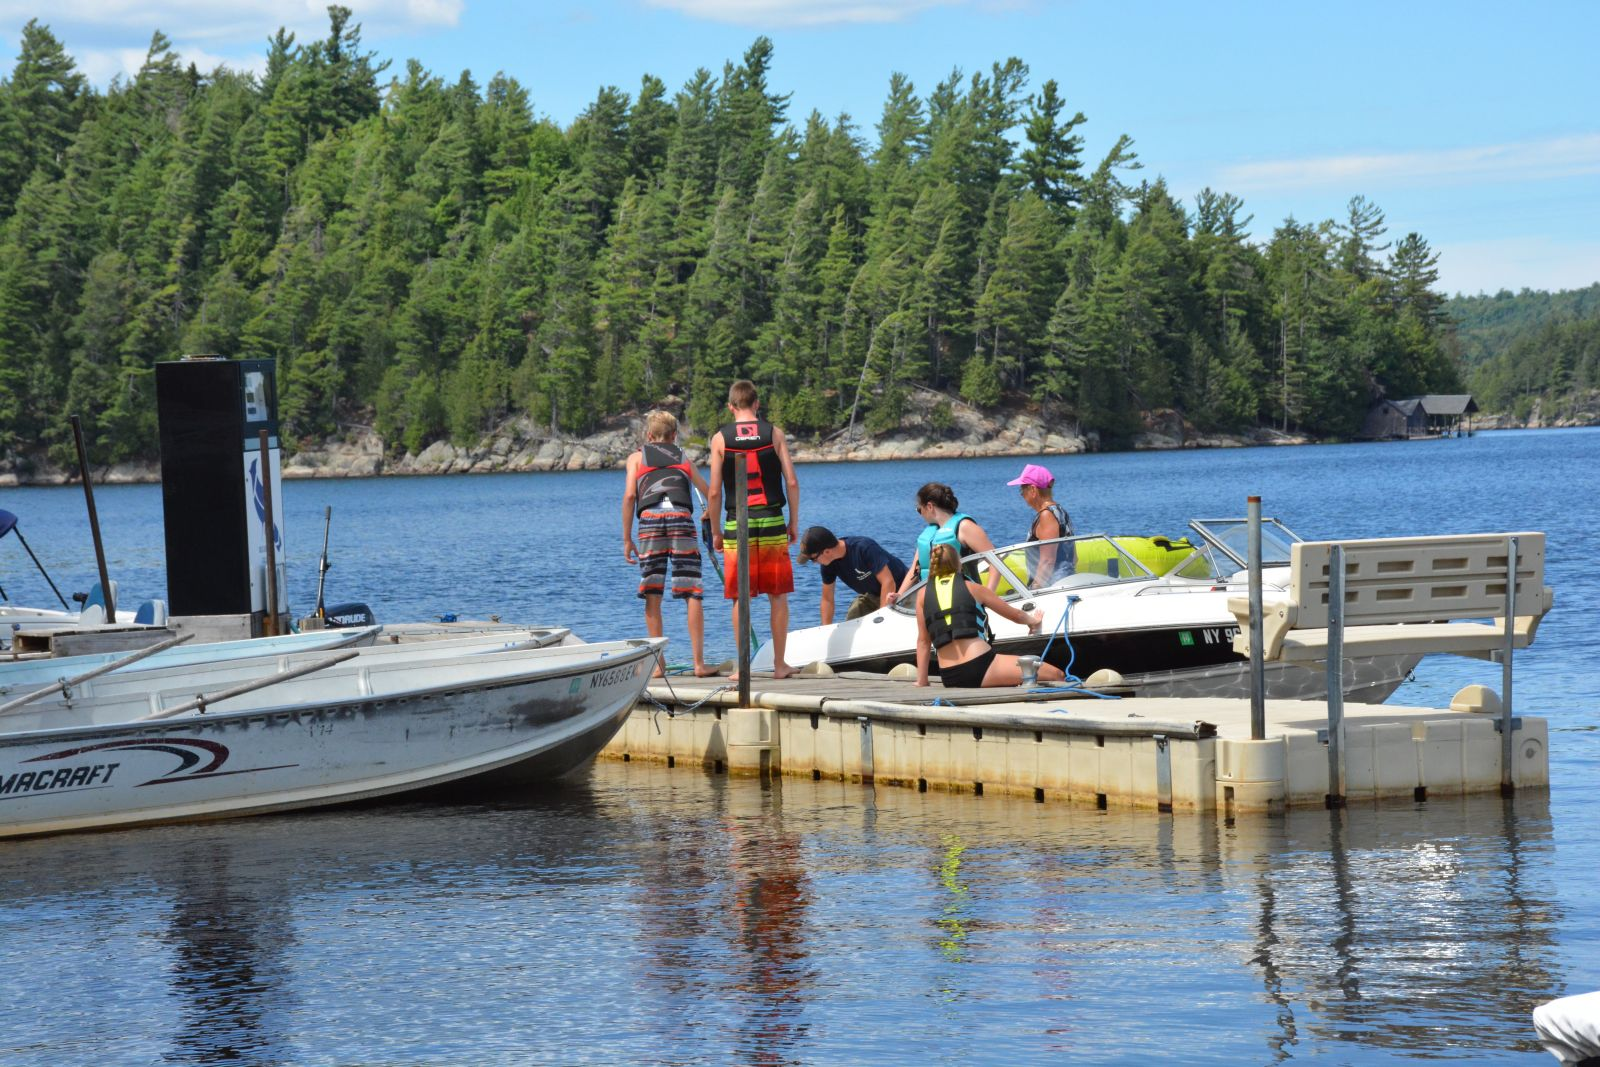 Mitch Harriman helps a few boating customers at the Blue Jay Campsite Marina.